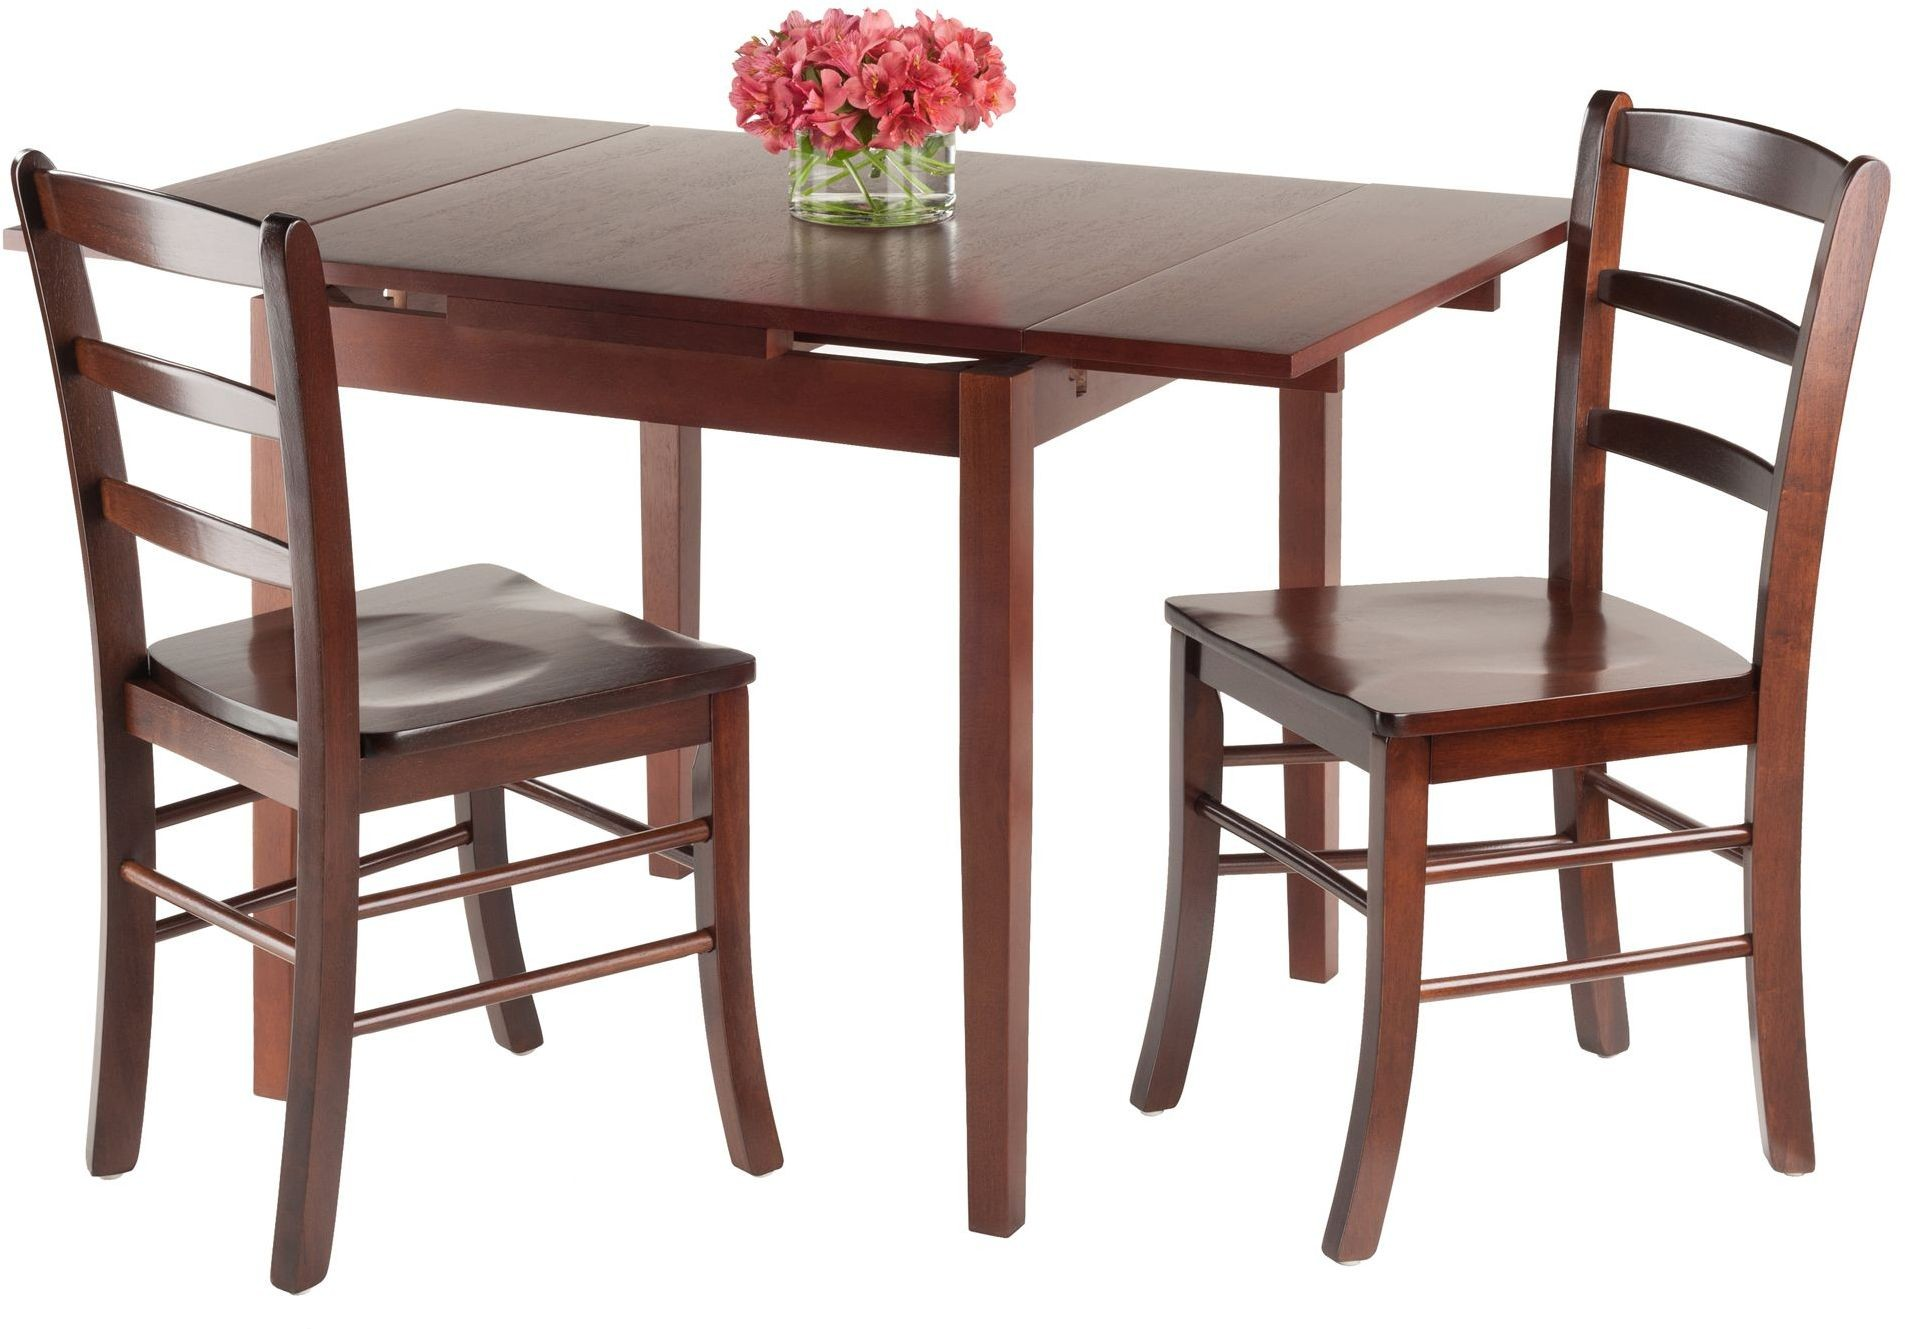 Pulman 3 piece extendable dining room set 94352 winsome for 2 piece dining room set